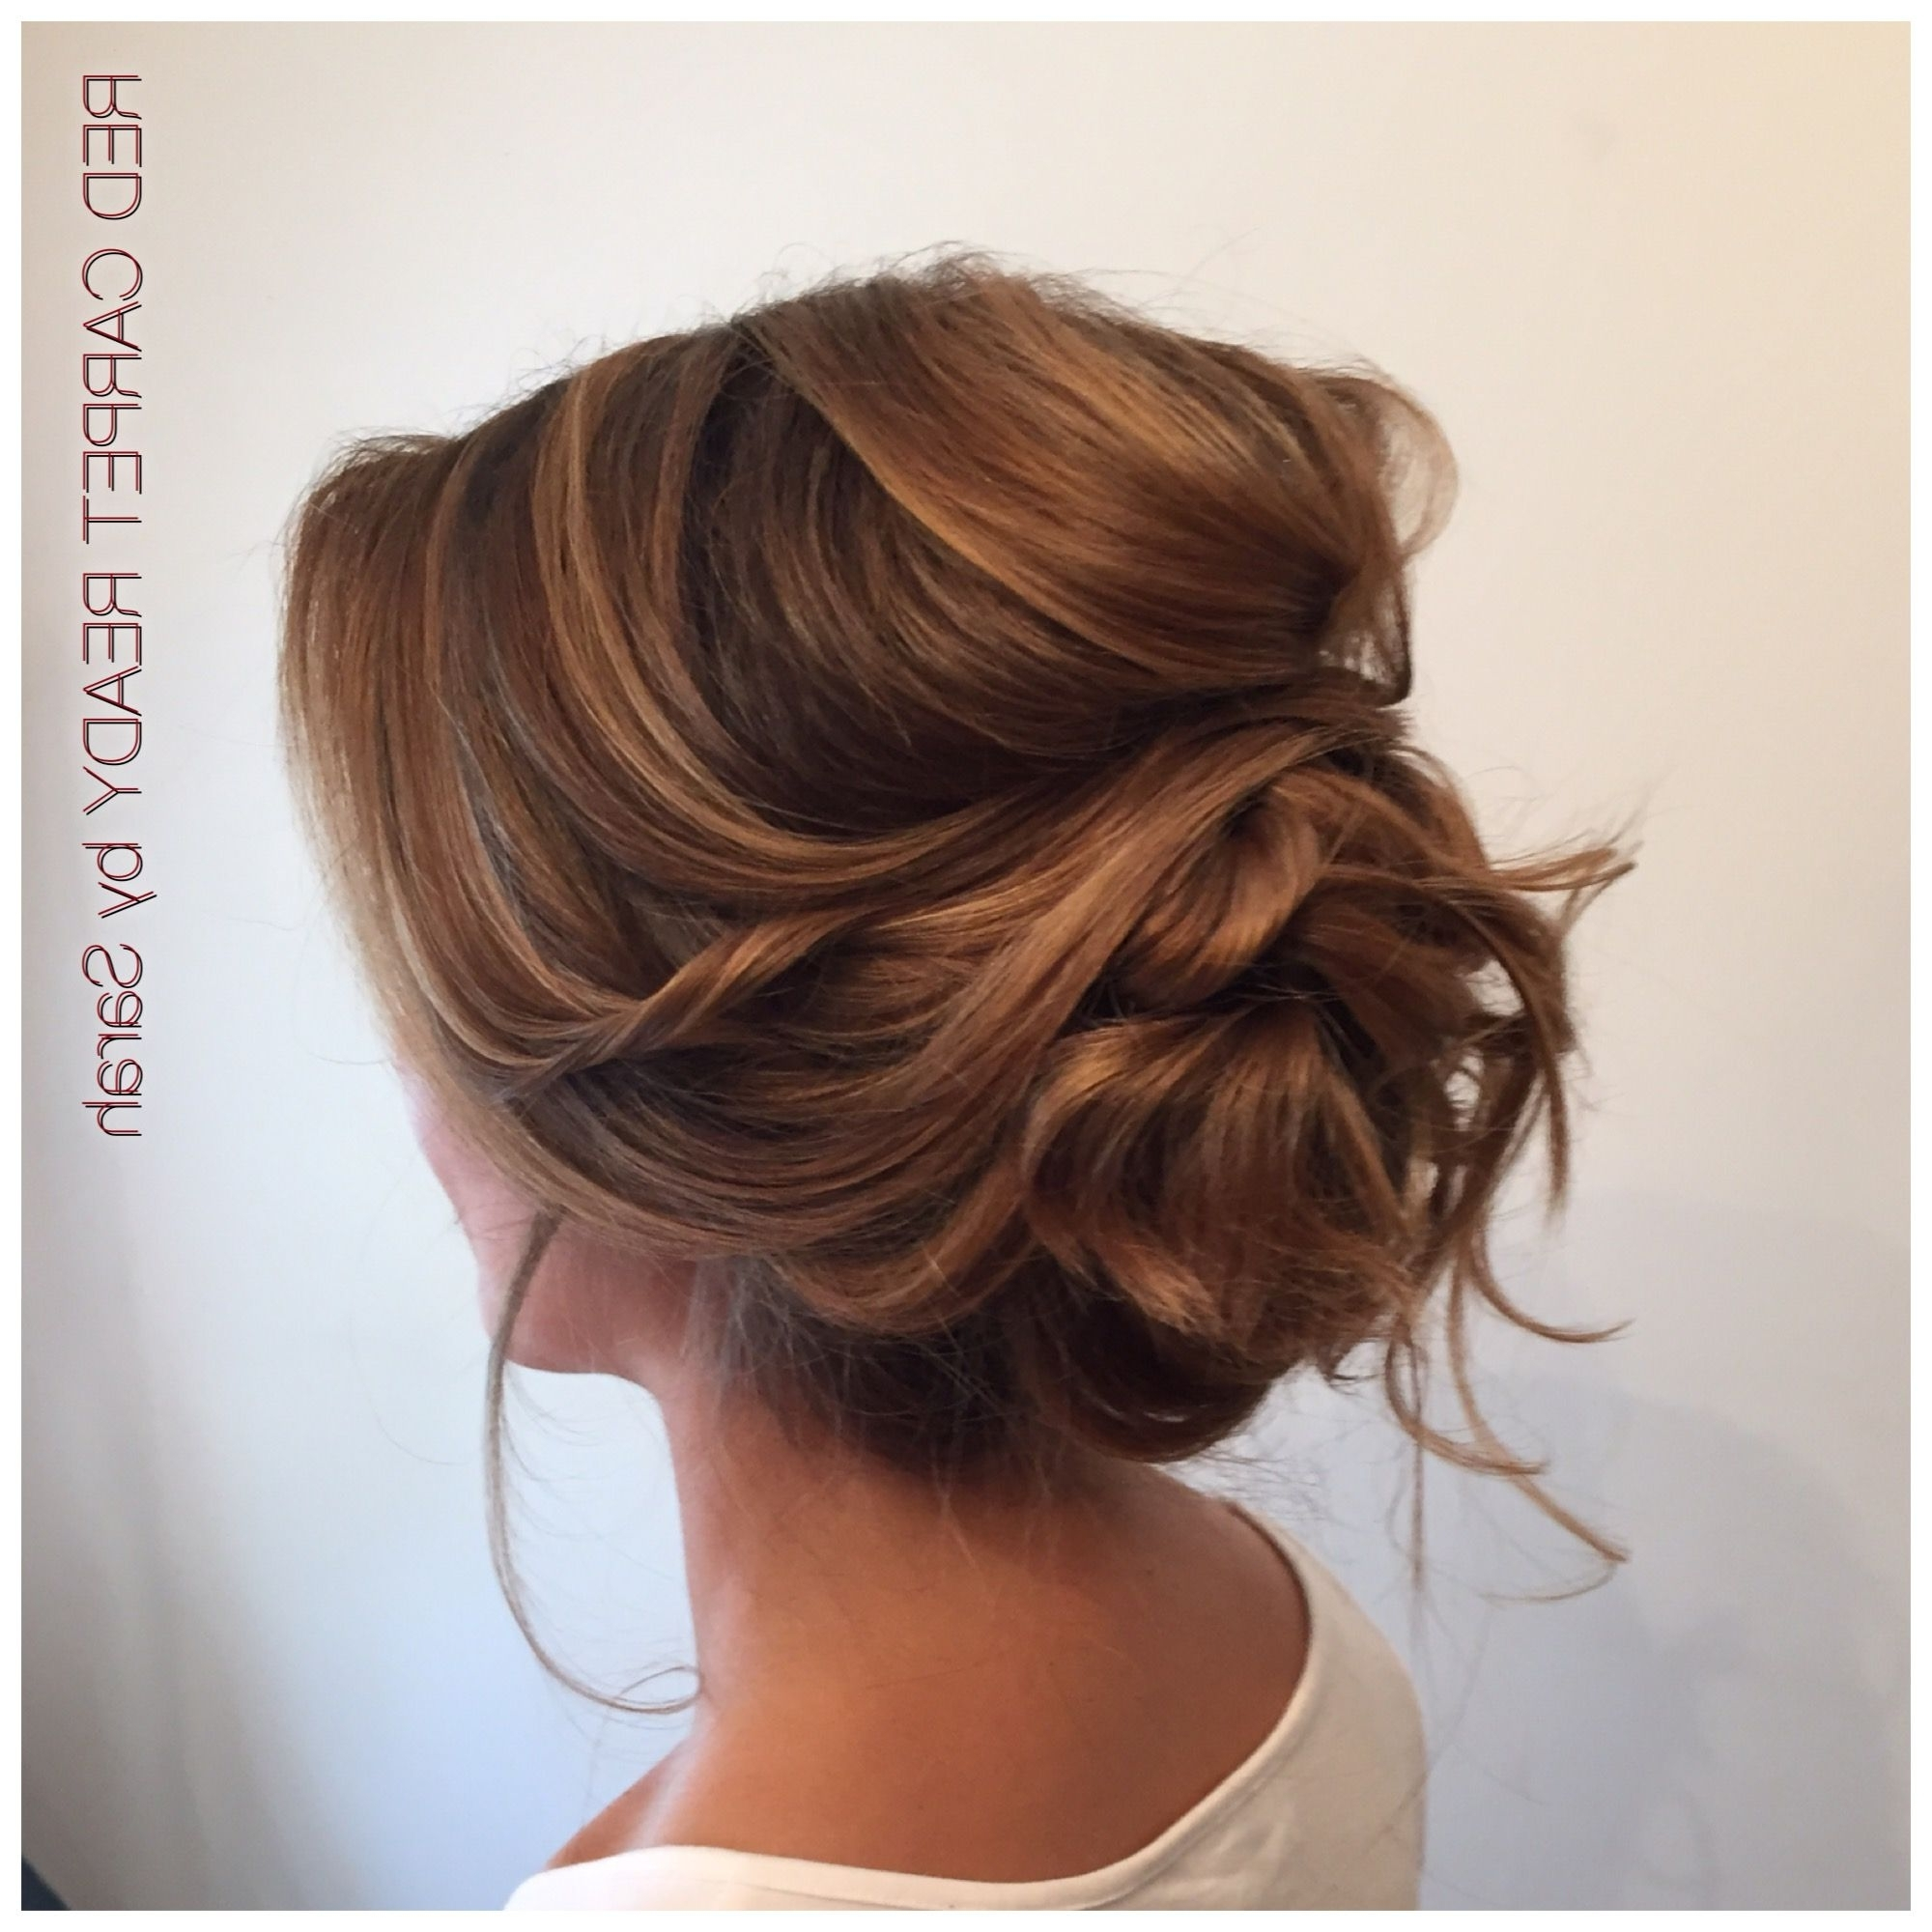 Soft Low Voluminous Updo Hairme | [Hair] Trends | Pinterest Regarding Low Bun Updo Hairstyles For Wedding (View 14 of 15)